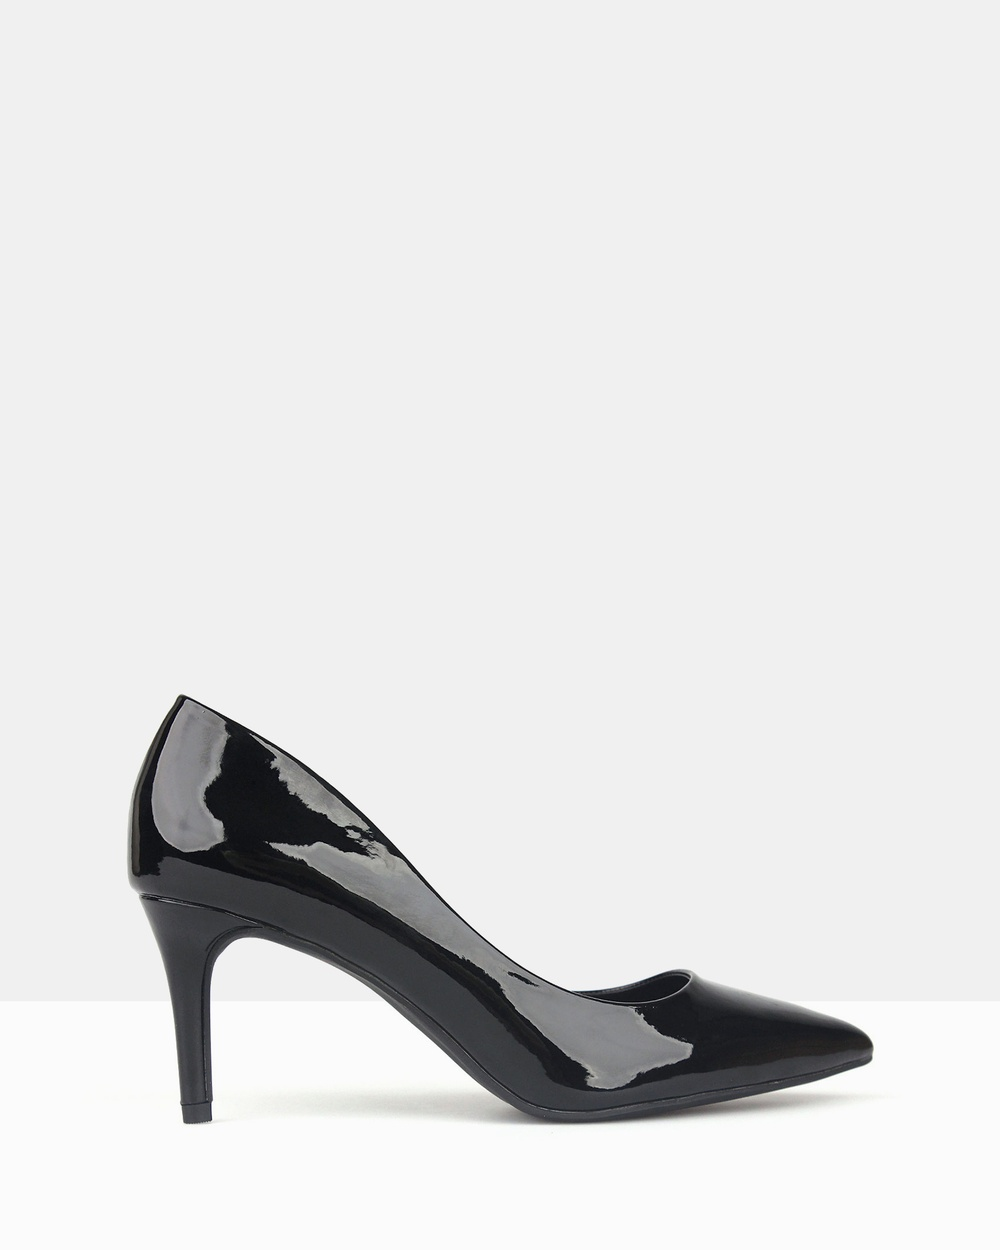 Betts Empower Pointed Toe Pumps All Pumps Black Patent Empower Pointed Toe Pumps